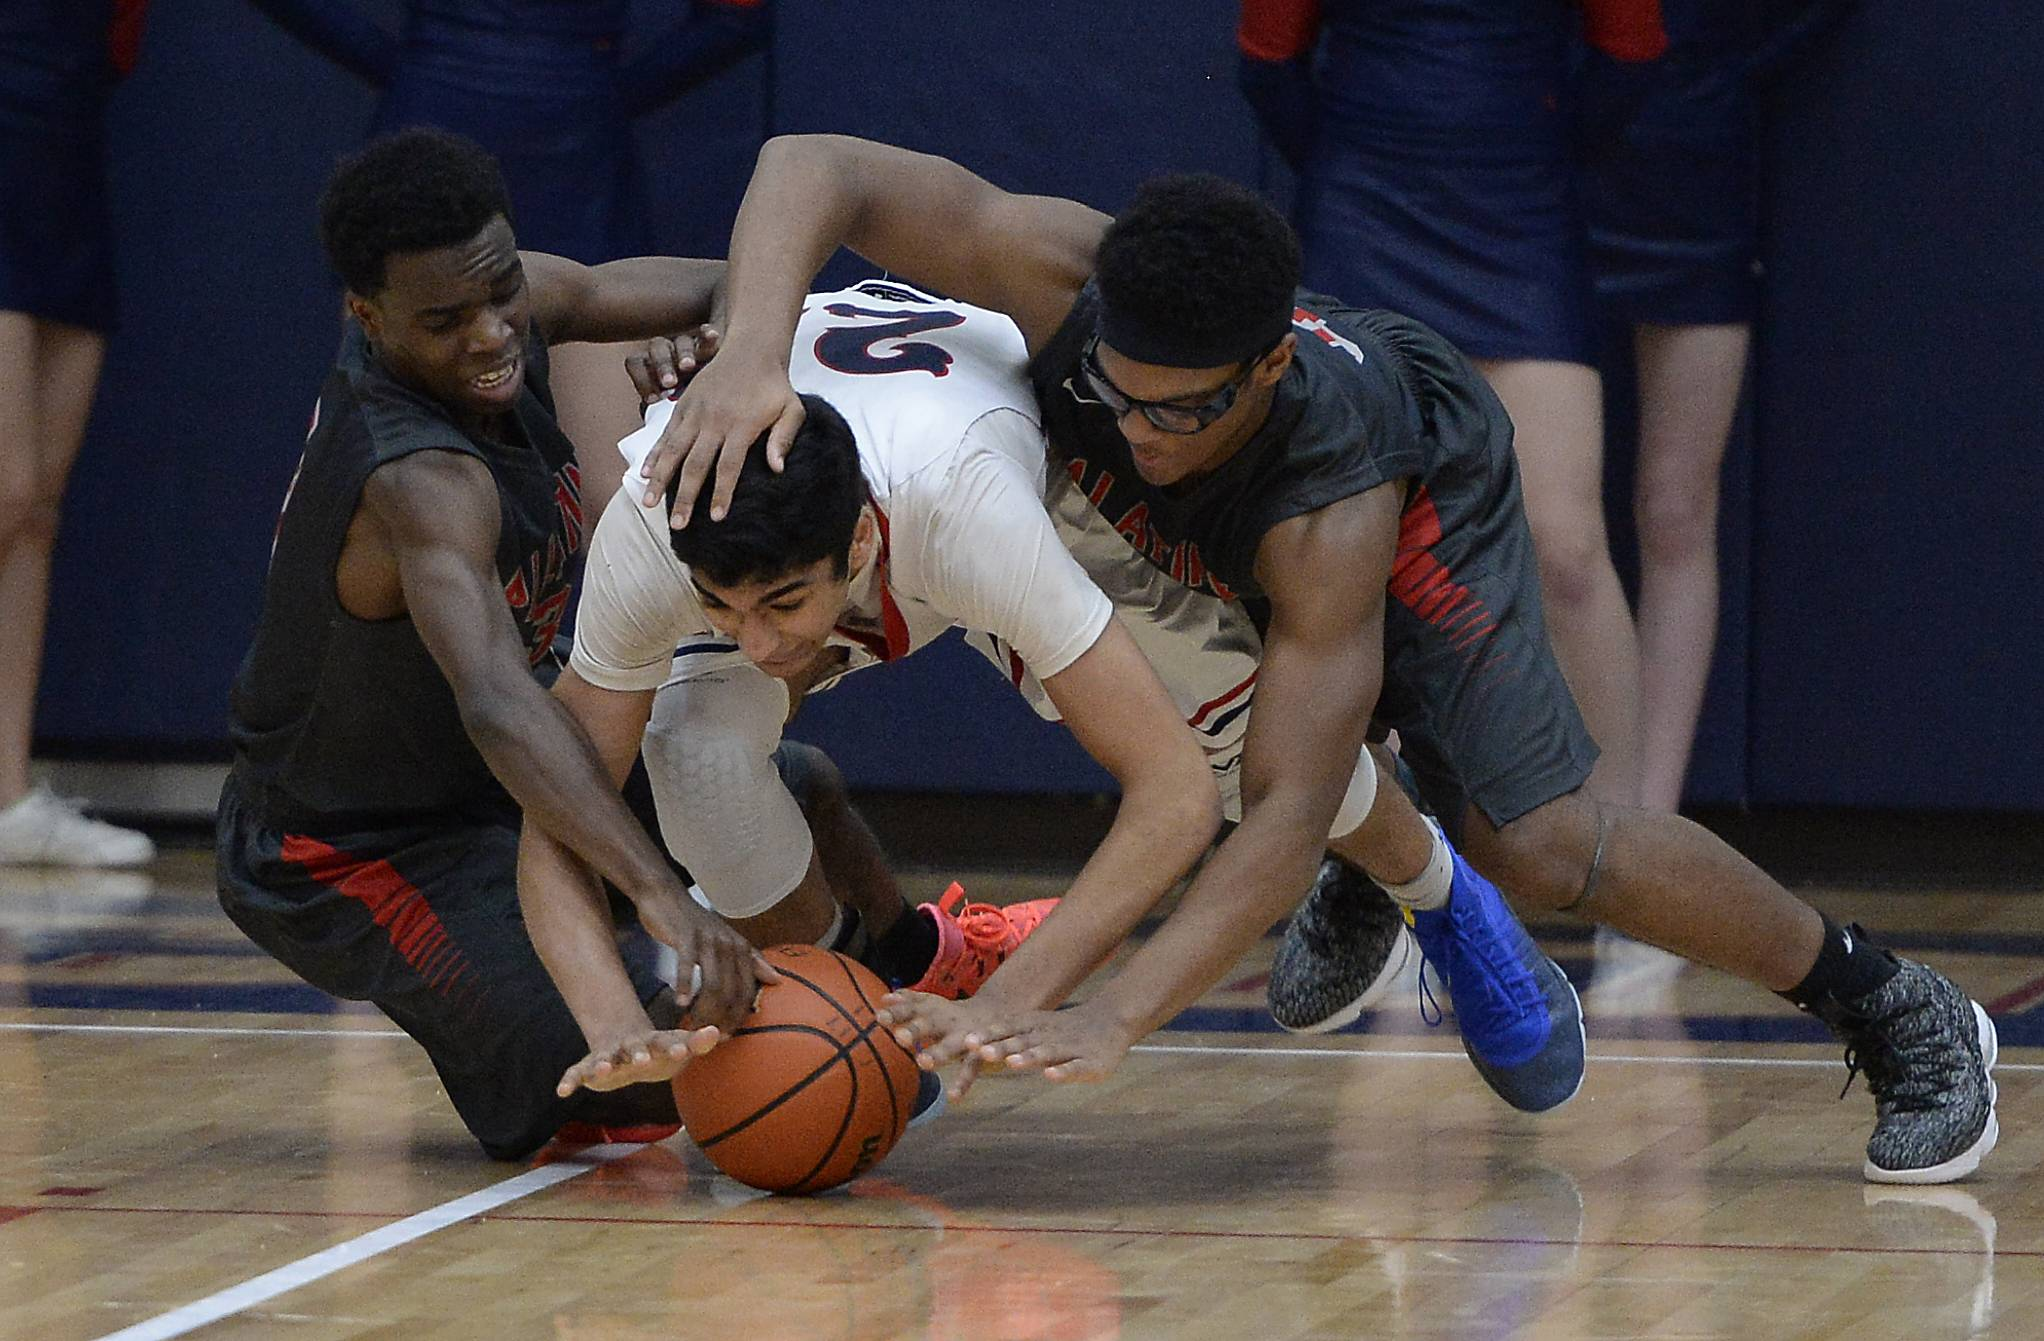 Palatine's Demareon Collins and teammate Cortez Hogans follow Conant's Rajat Mittal to the floor on a loose ball.